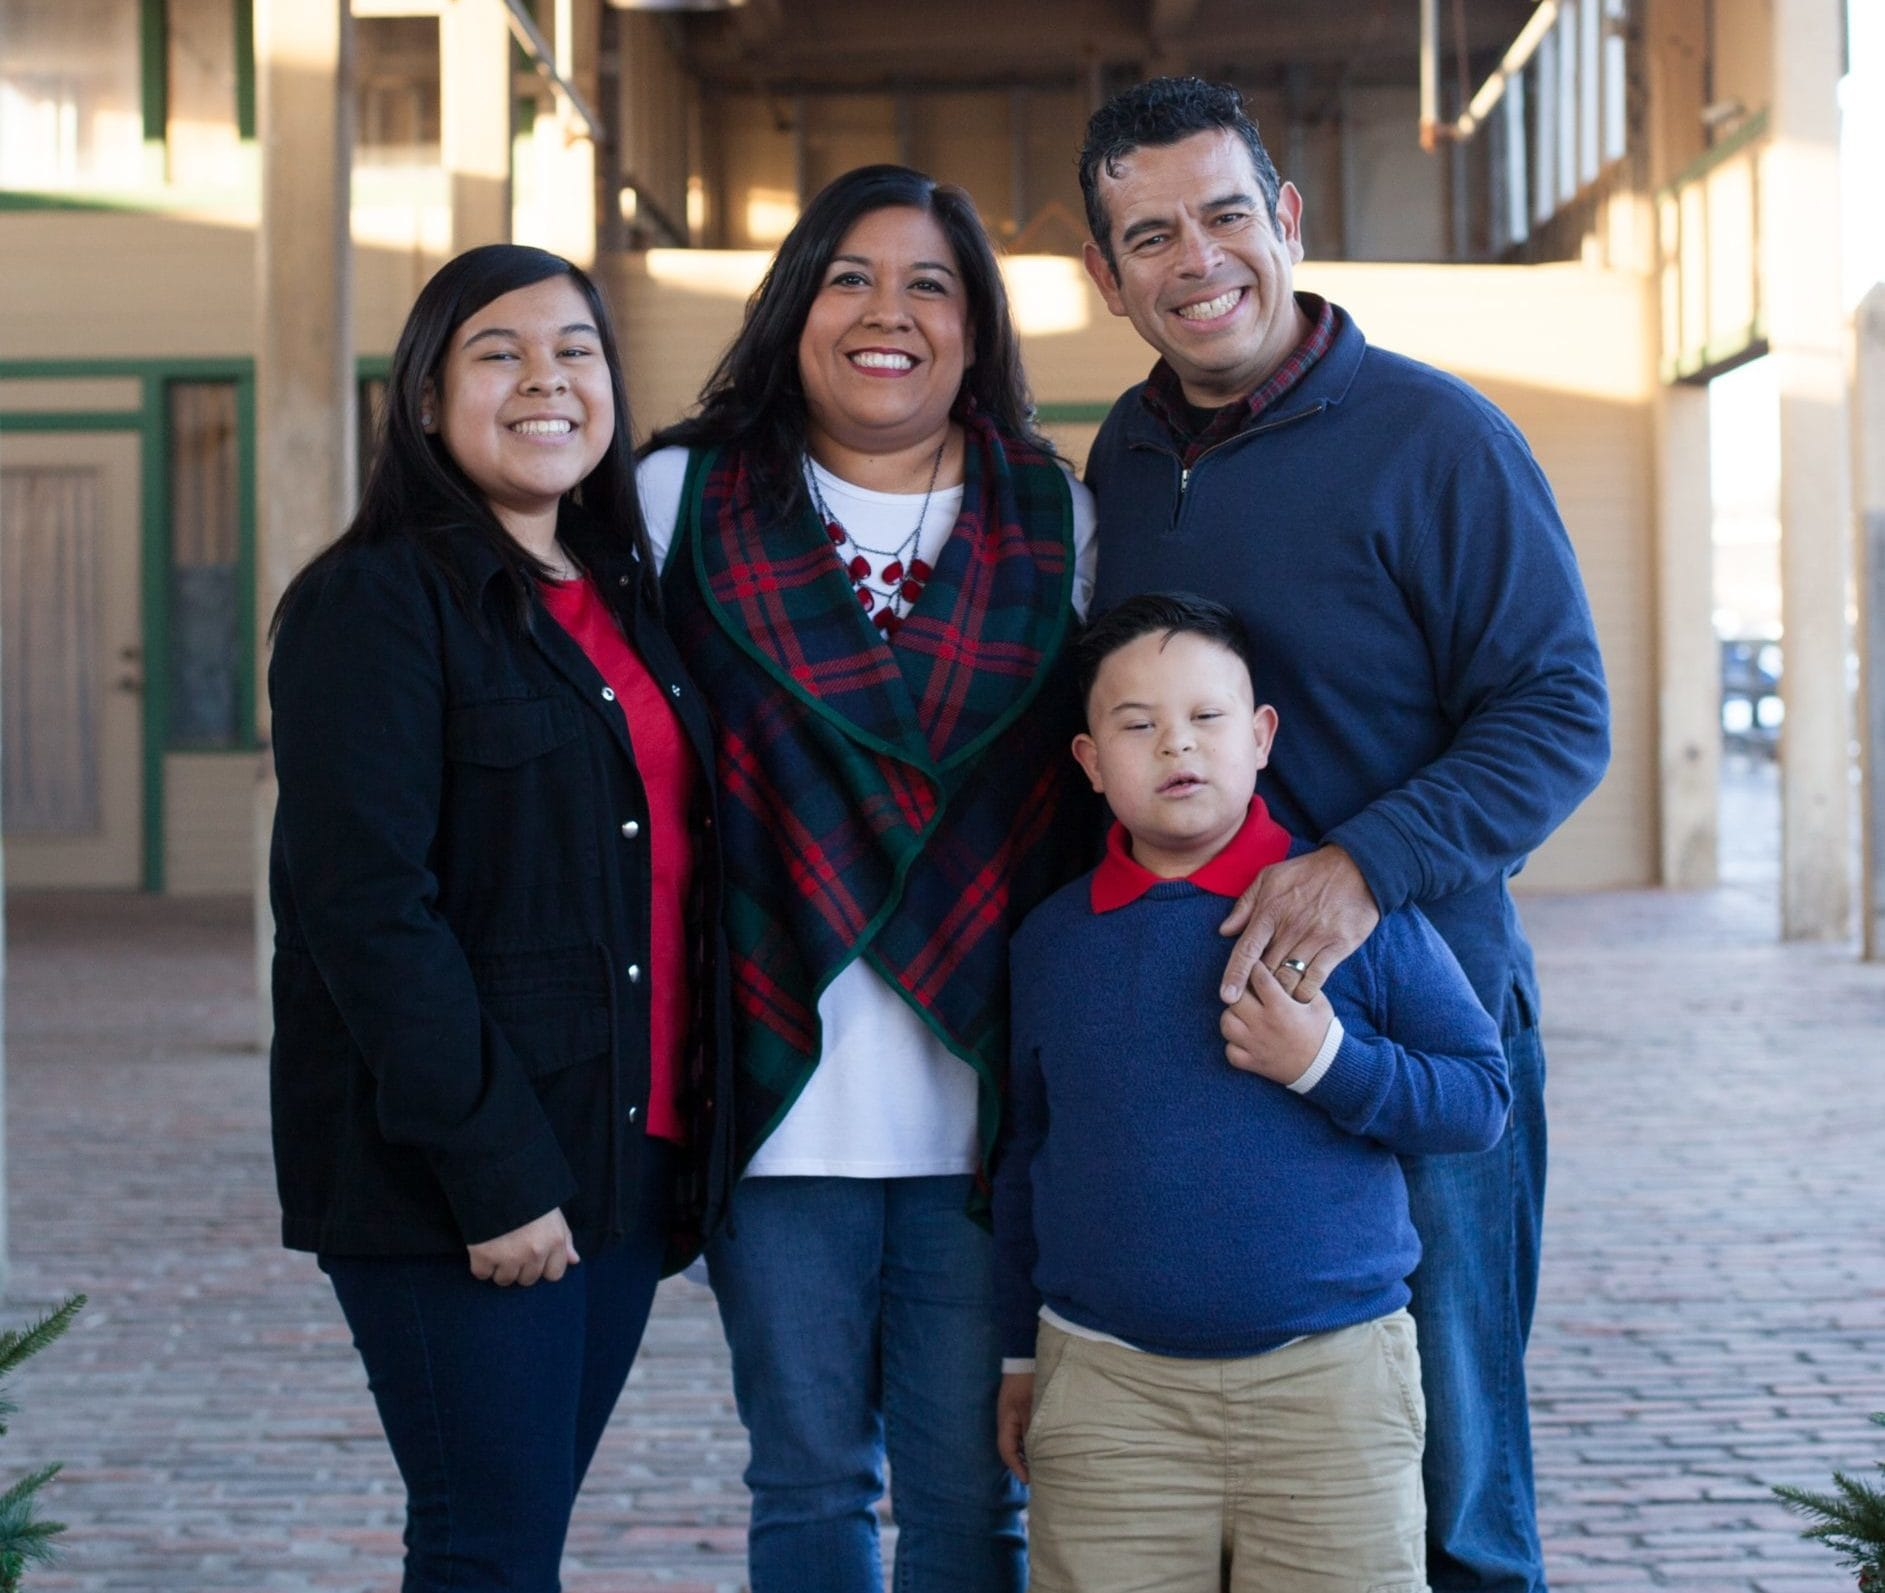 Maria Rosales and her family